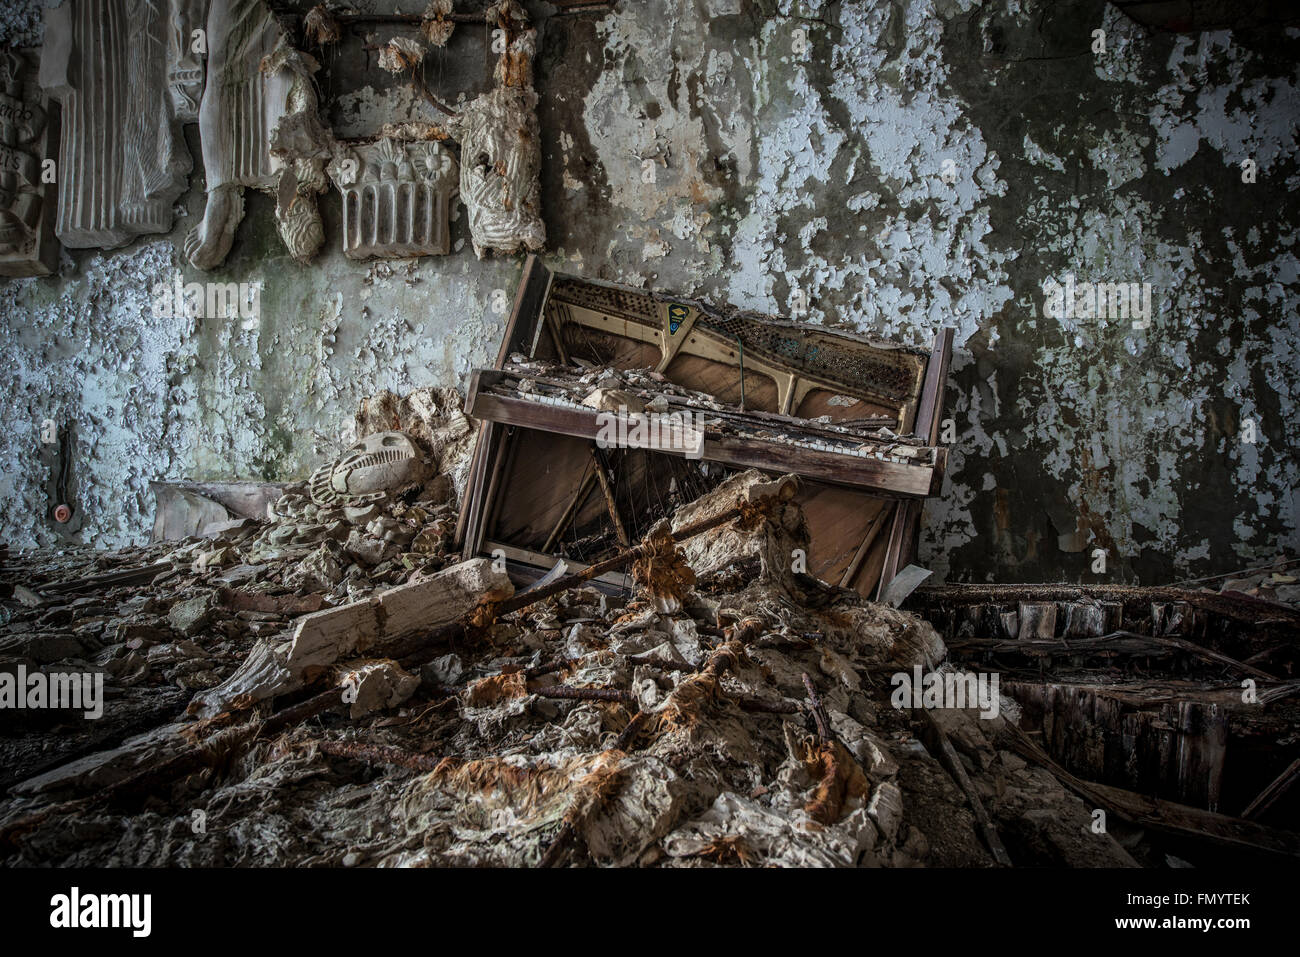 Destroyed piano in Pripyat, Chernobyl scene of 1986 nuclear disaster - Stock Image